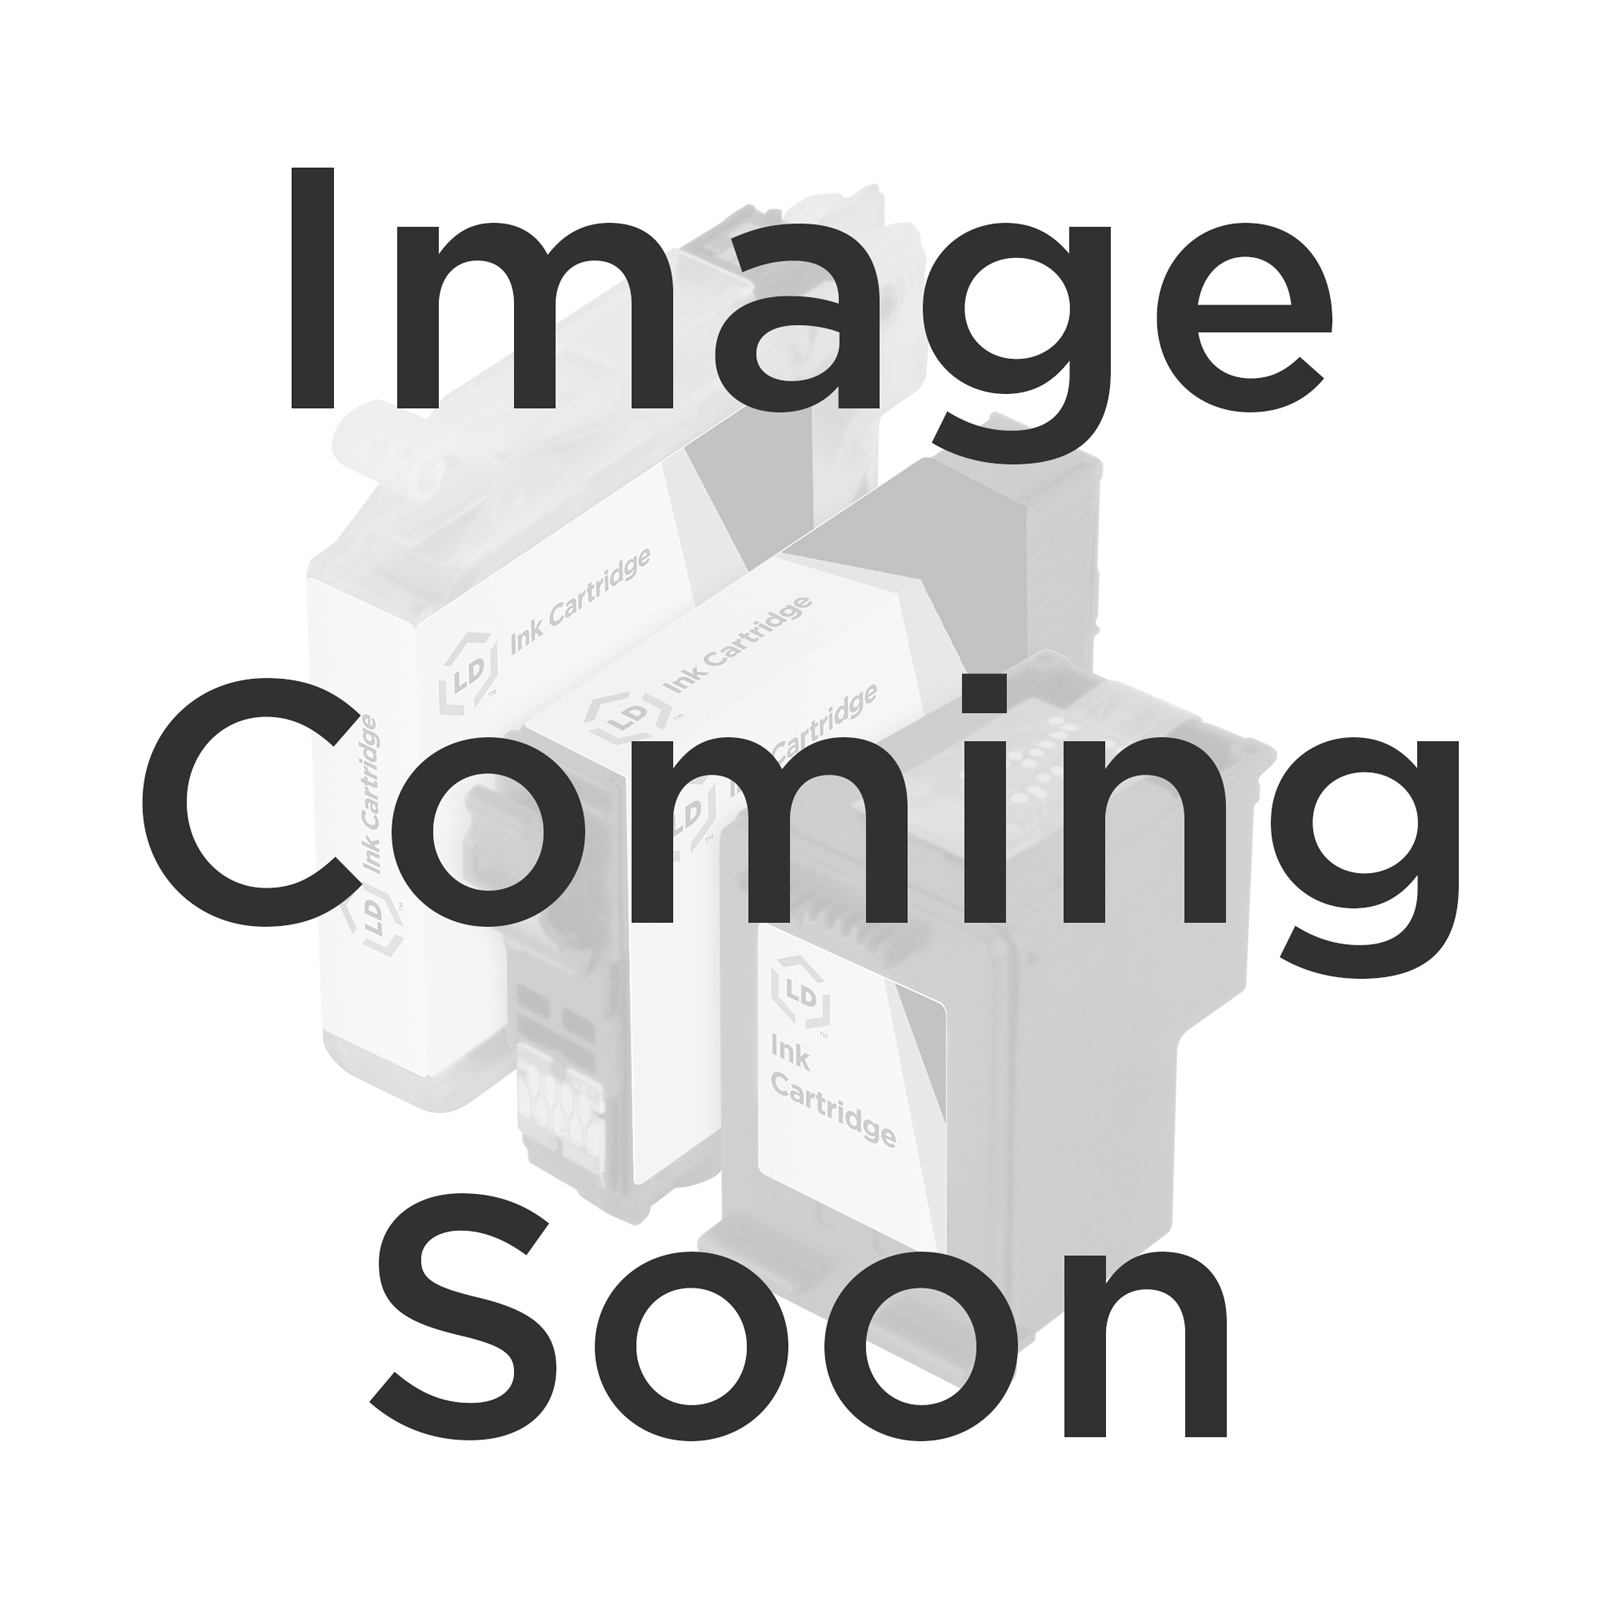 Compatible Canon PGI-220 & CLI-221: 1 Pigment Bk PGI-220 & 1 Each of CLI-221 Bk, C, M, Y, G (Set of Ink)